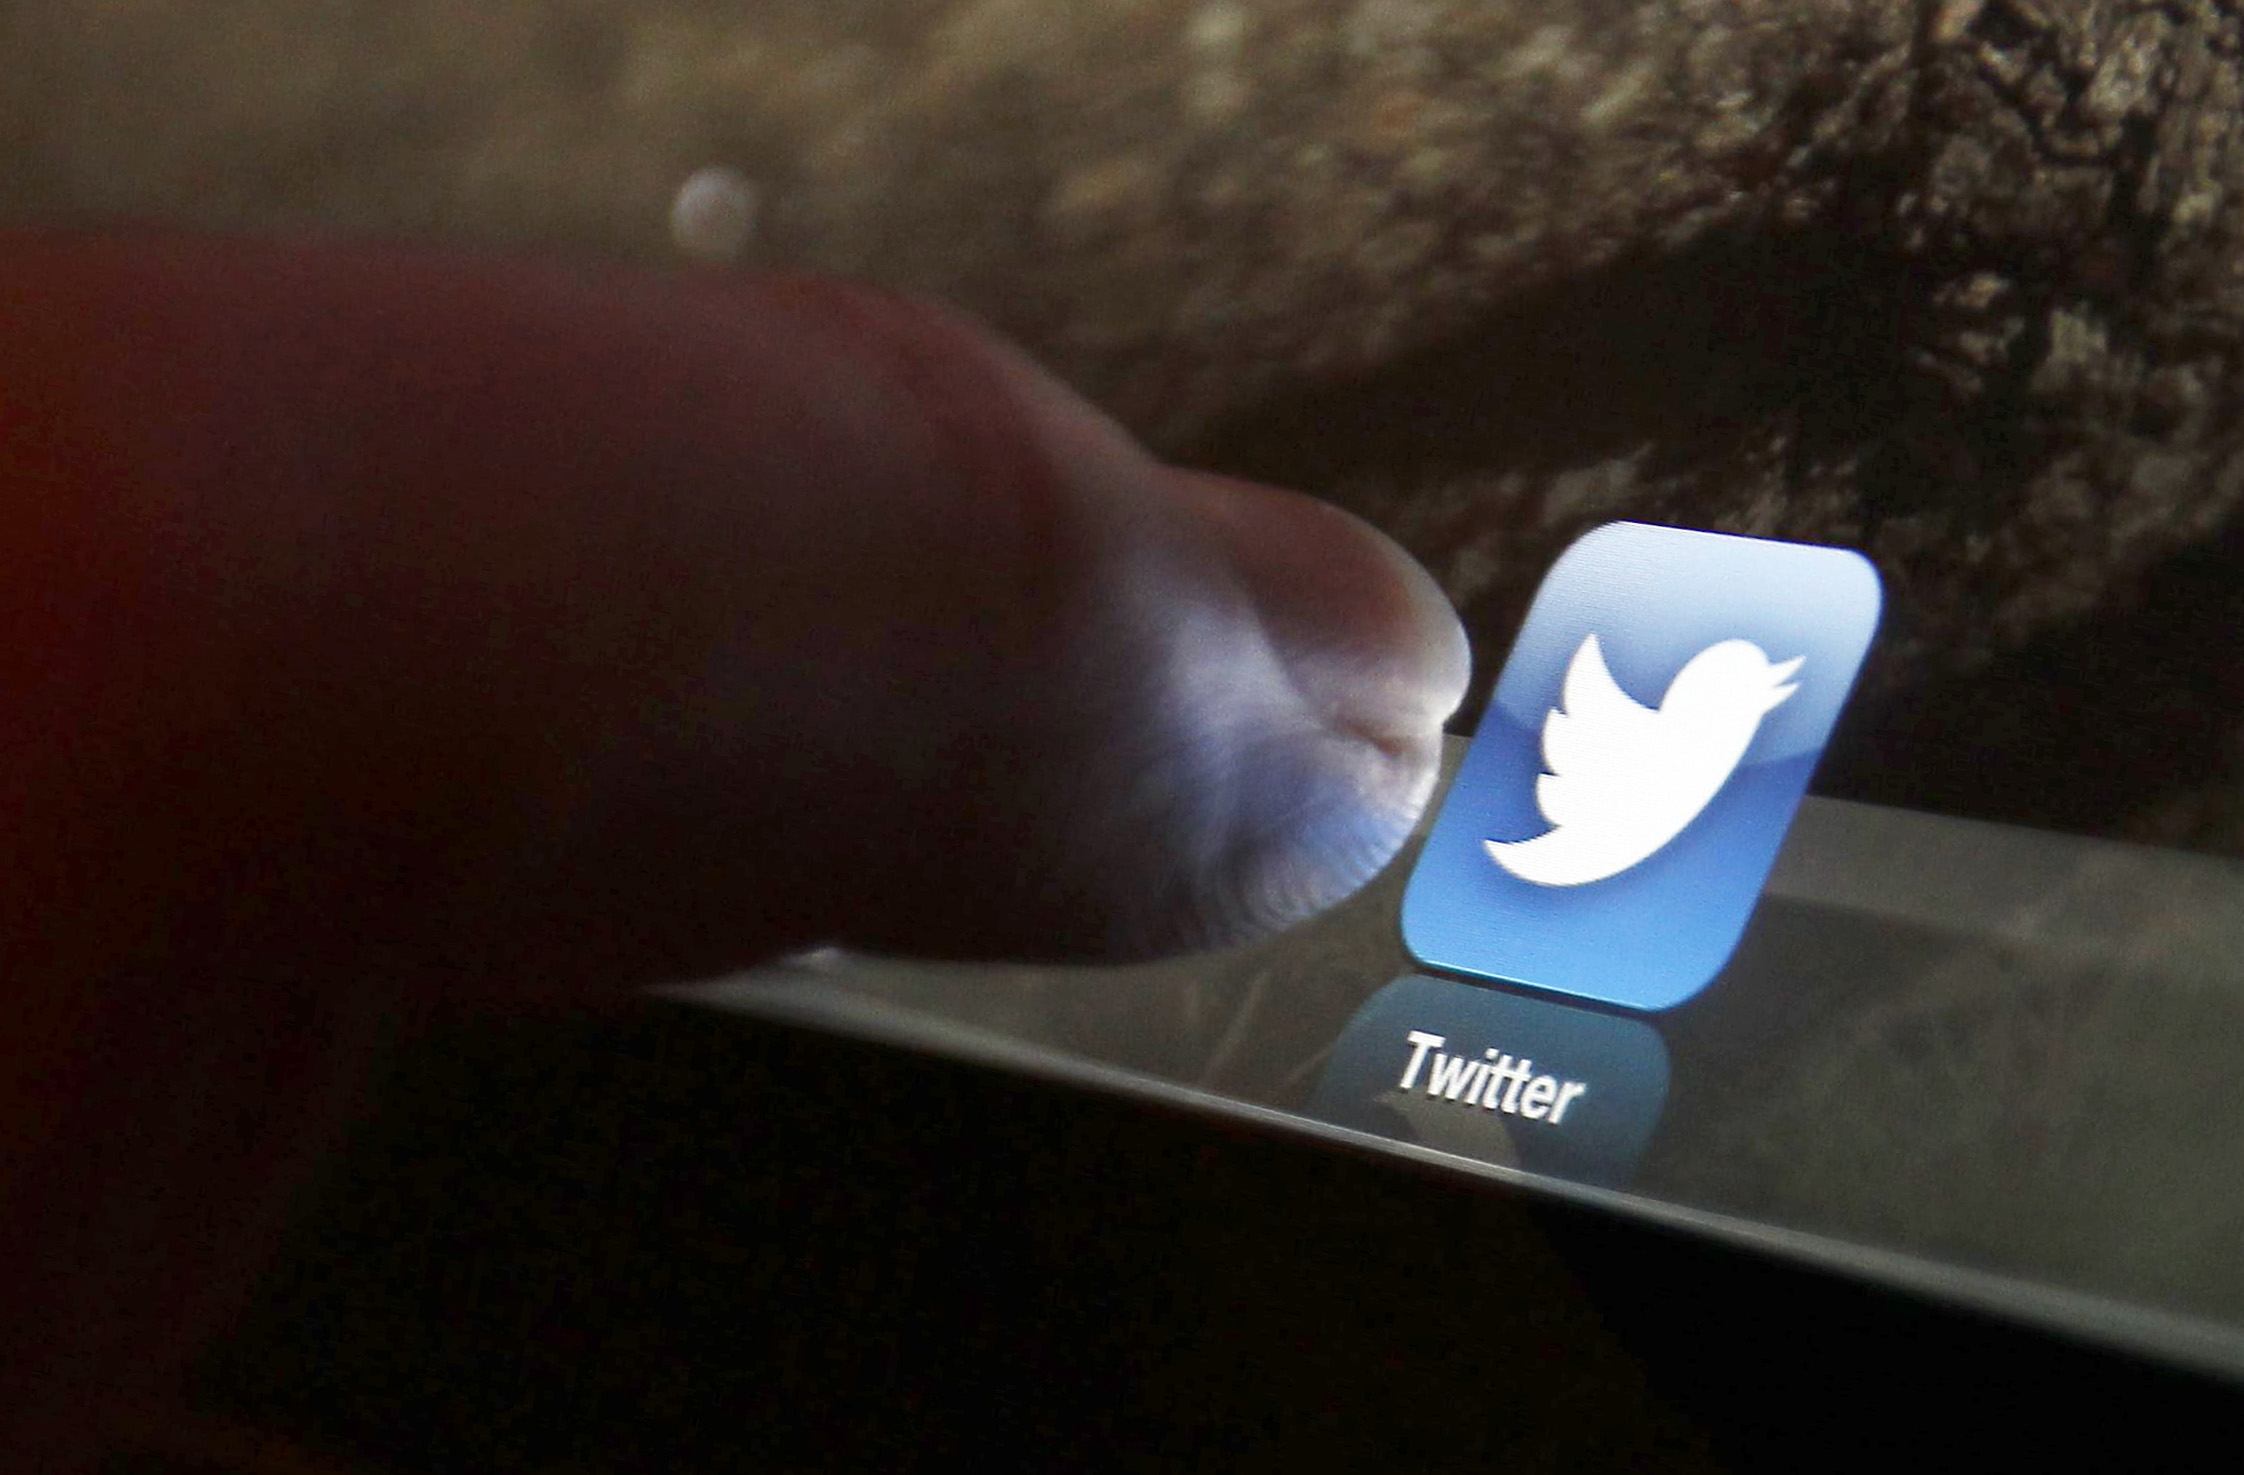 Twitter will seek to raise $1 billion in its initial public offering.